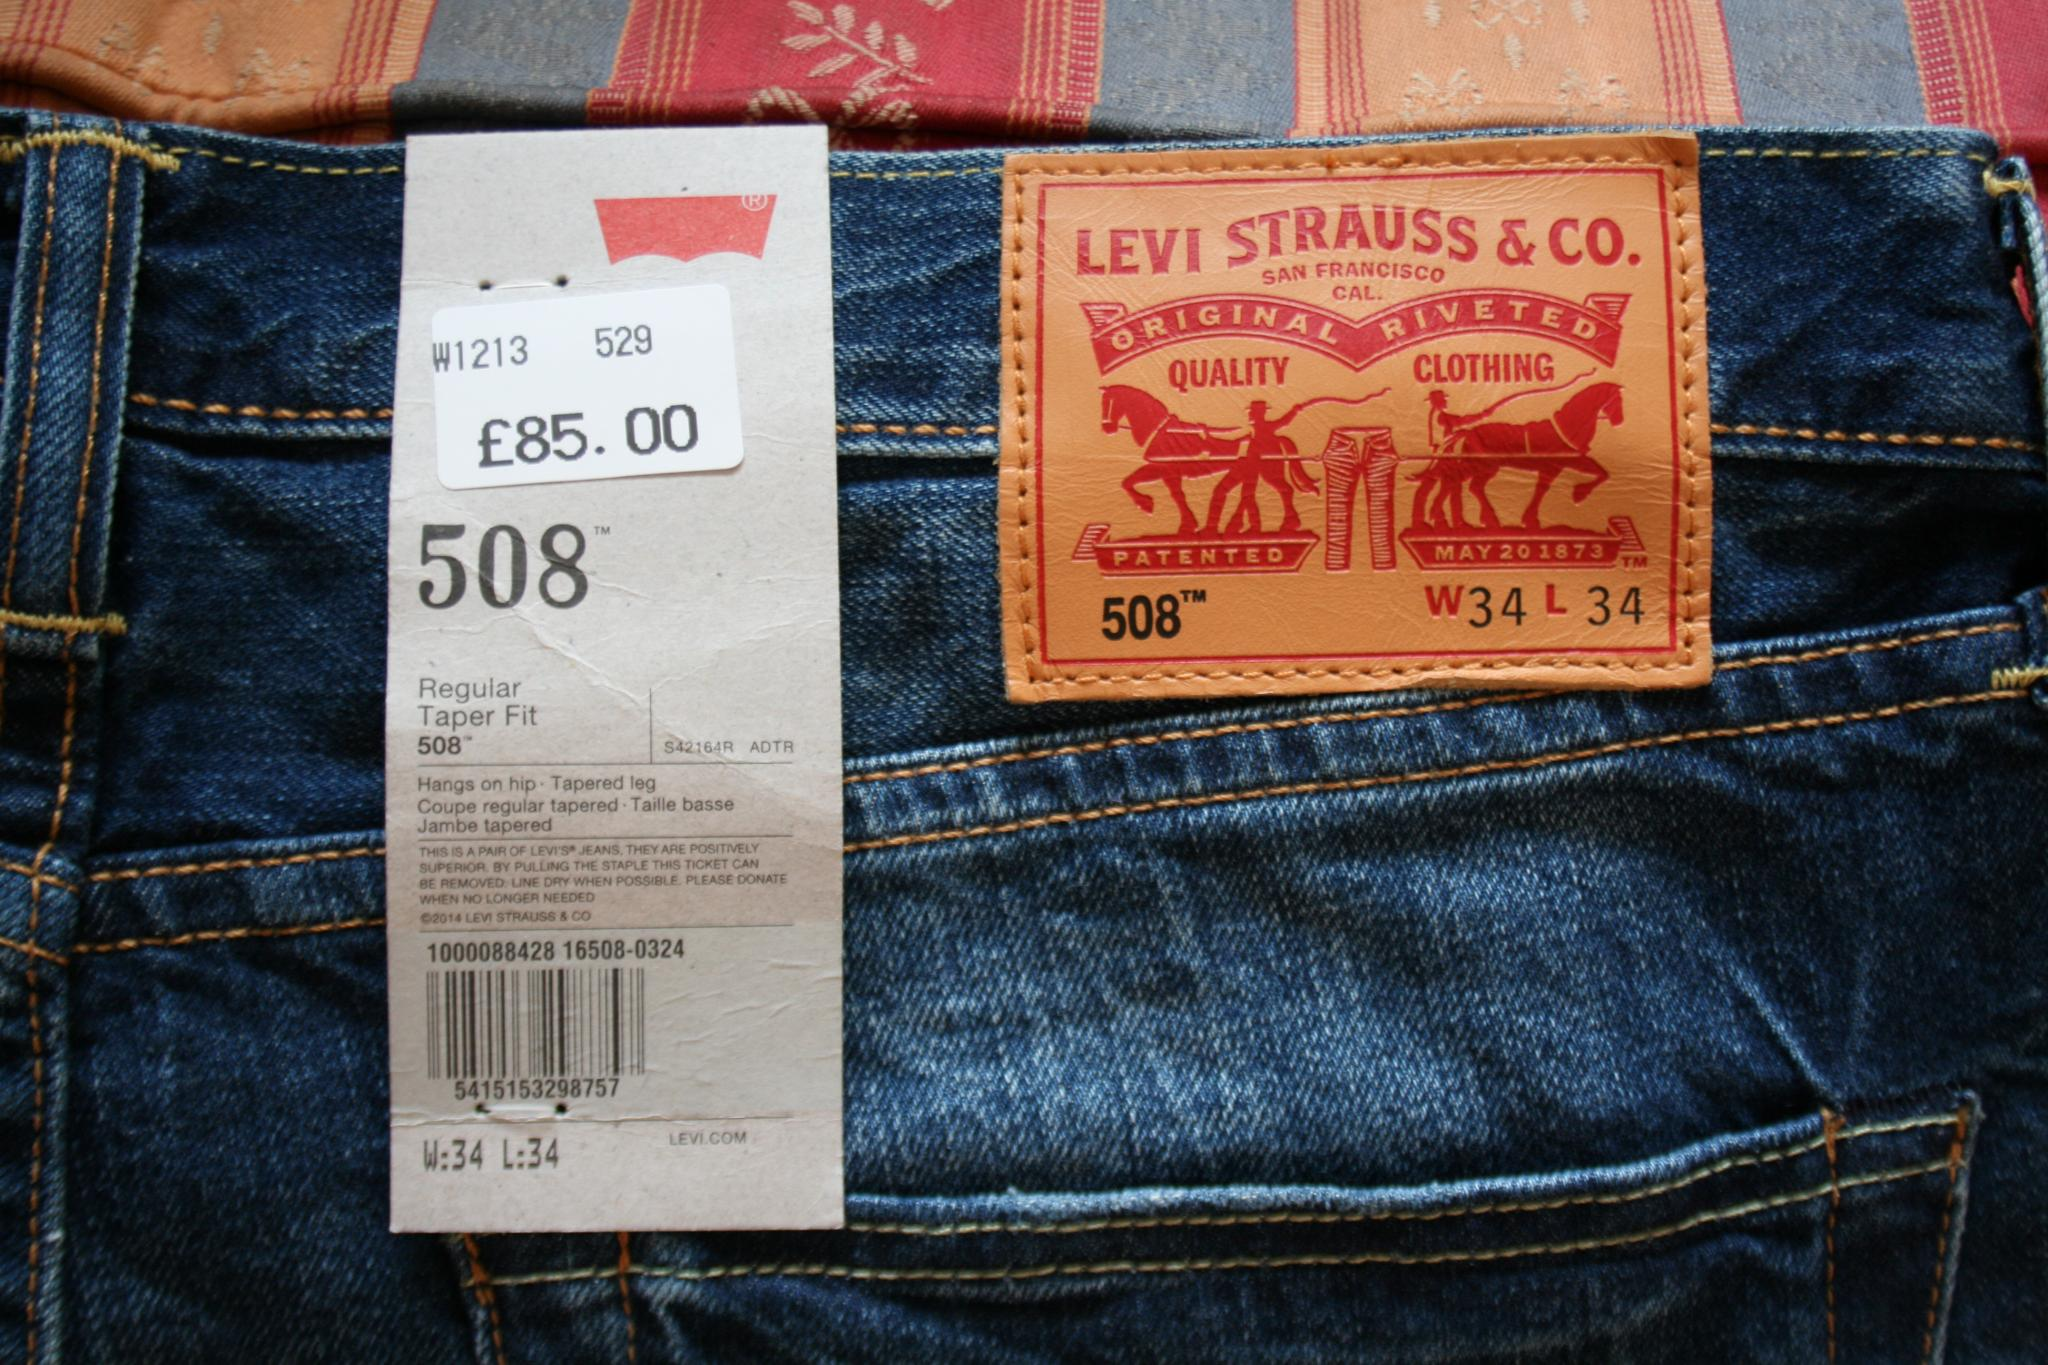 9b7dfc7755a Ot Levi S 508 Slim Jeans Lfgss. Джинсы Levi S 508 Regular Taper Fit Broken Raw  31 34 р 16508 0001